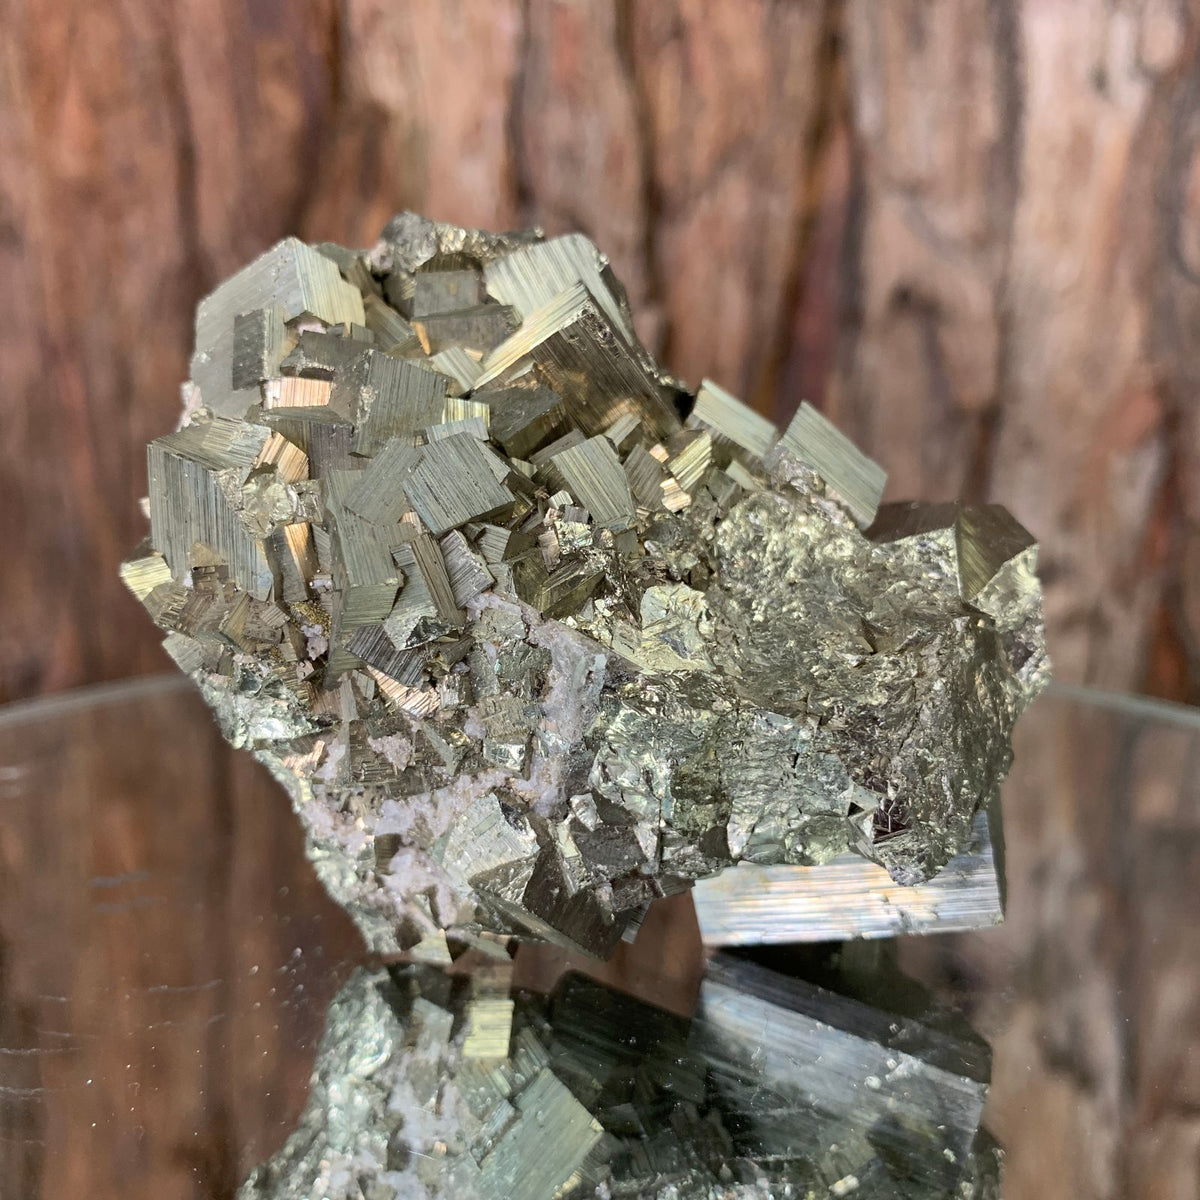 7.3cm 302g Pyrite from Hubei, China